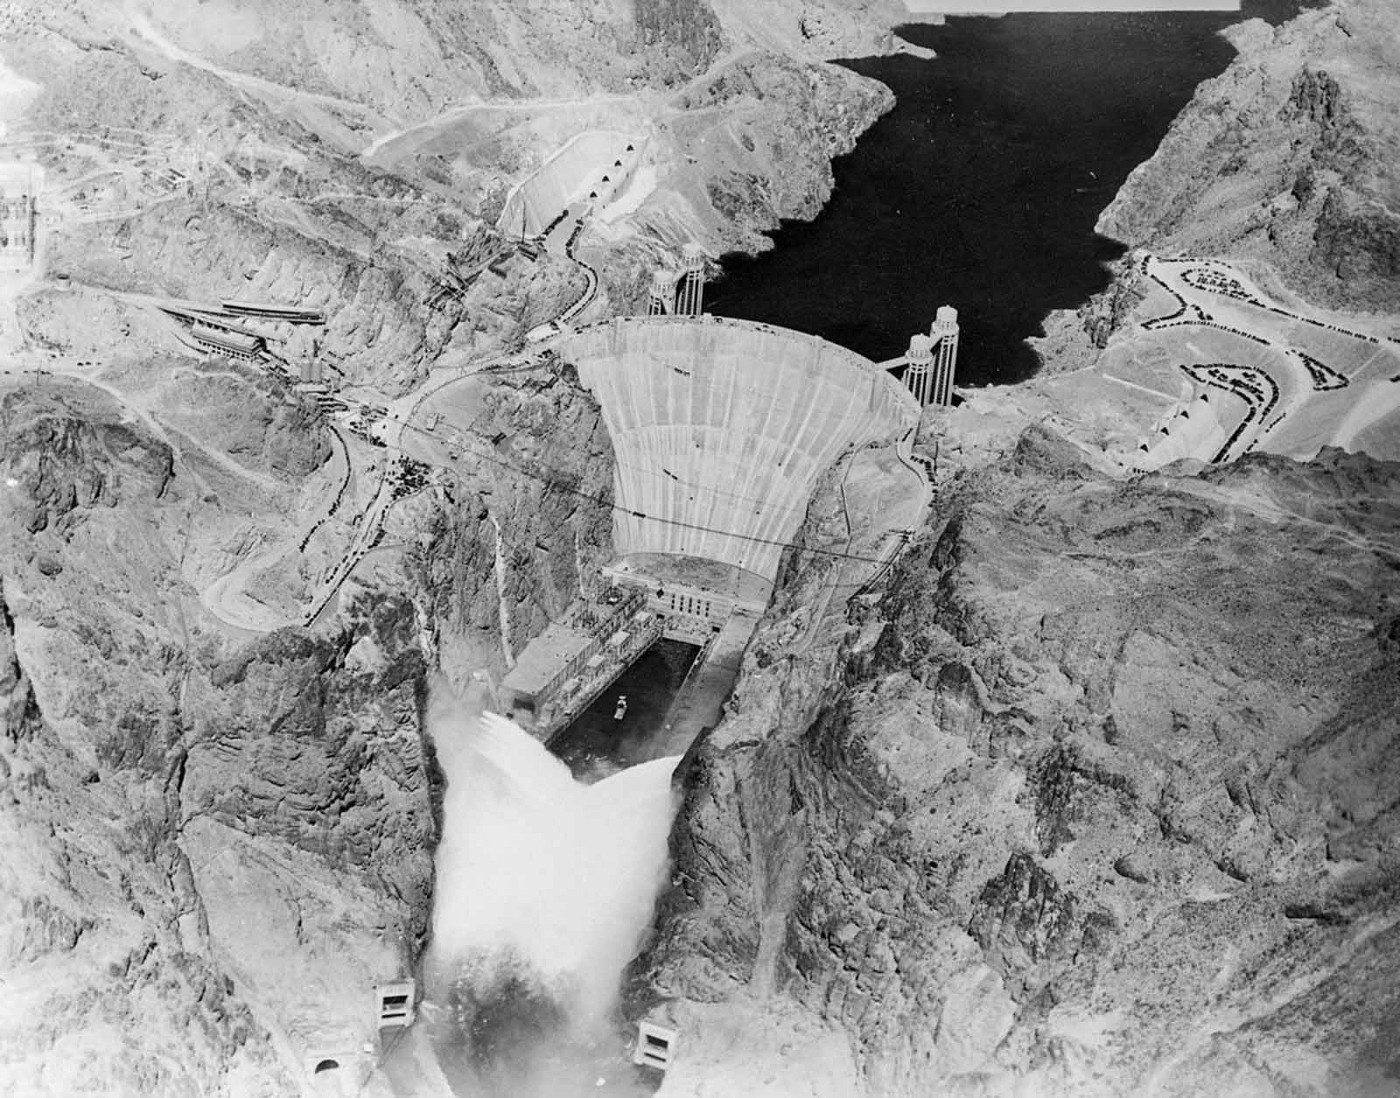 An antique photo of the Hoover Dam just after completion, with the water level visibly higher than in the previous photo.